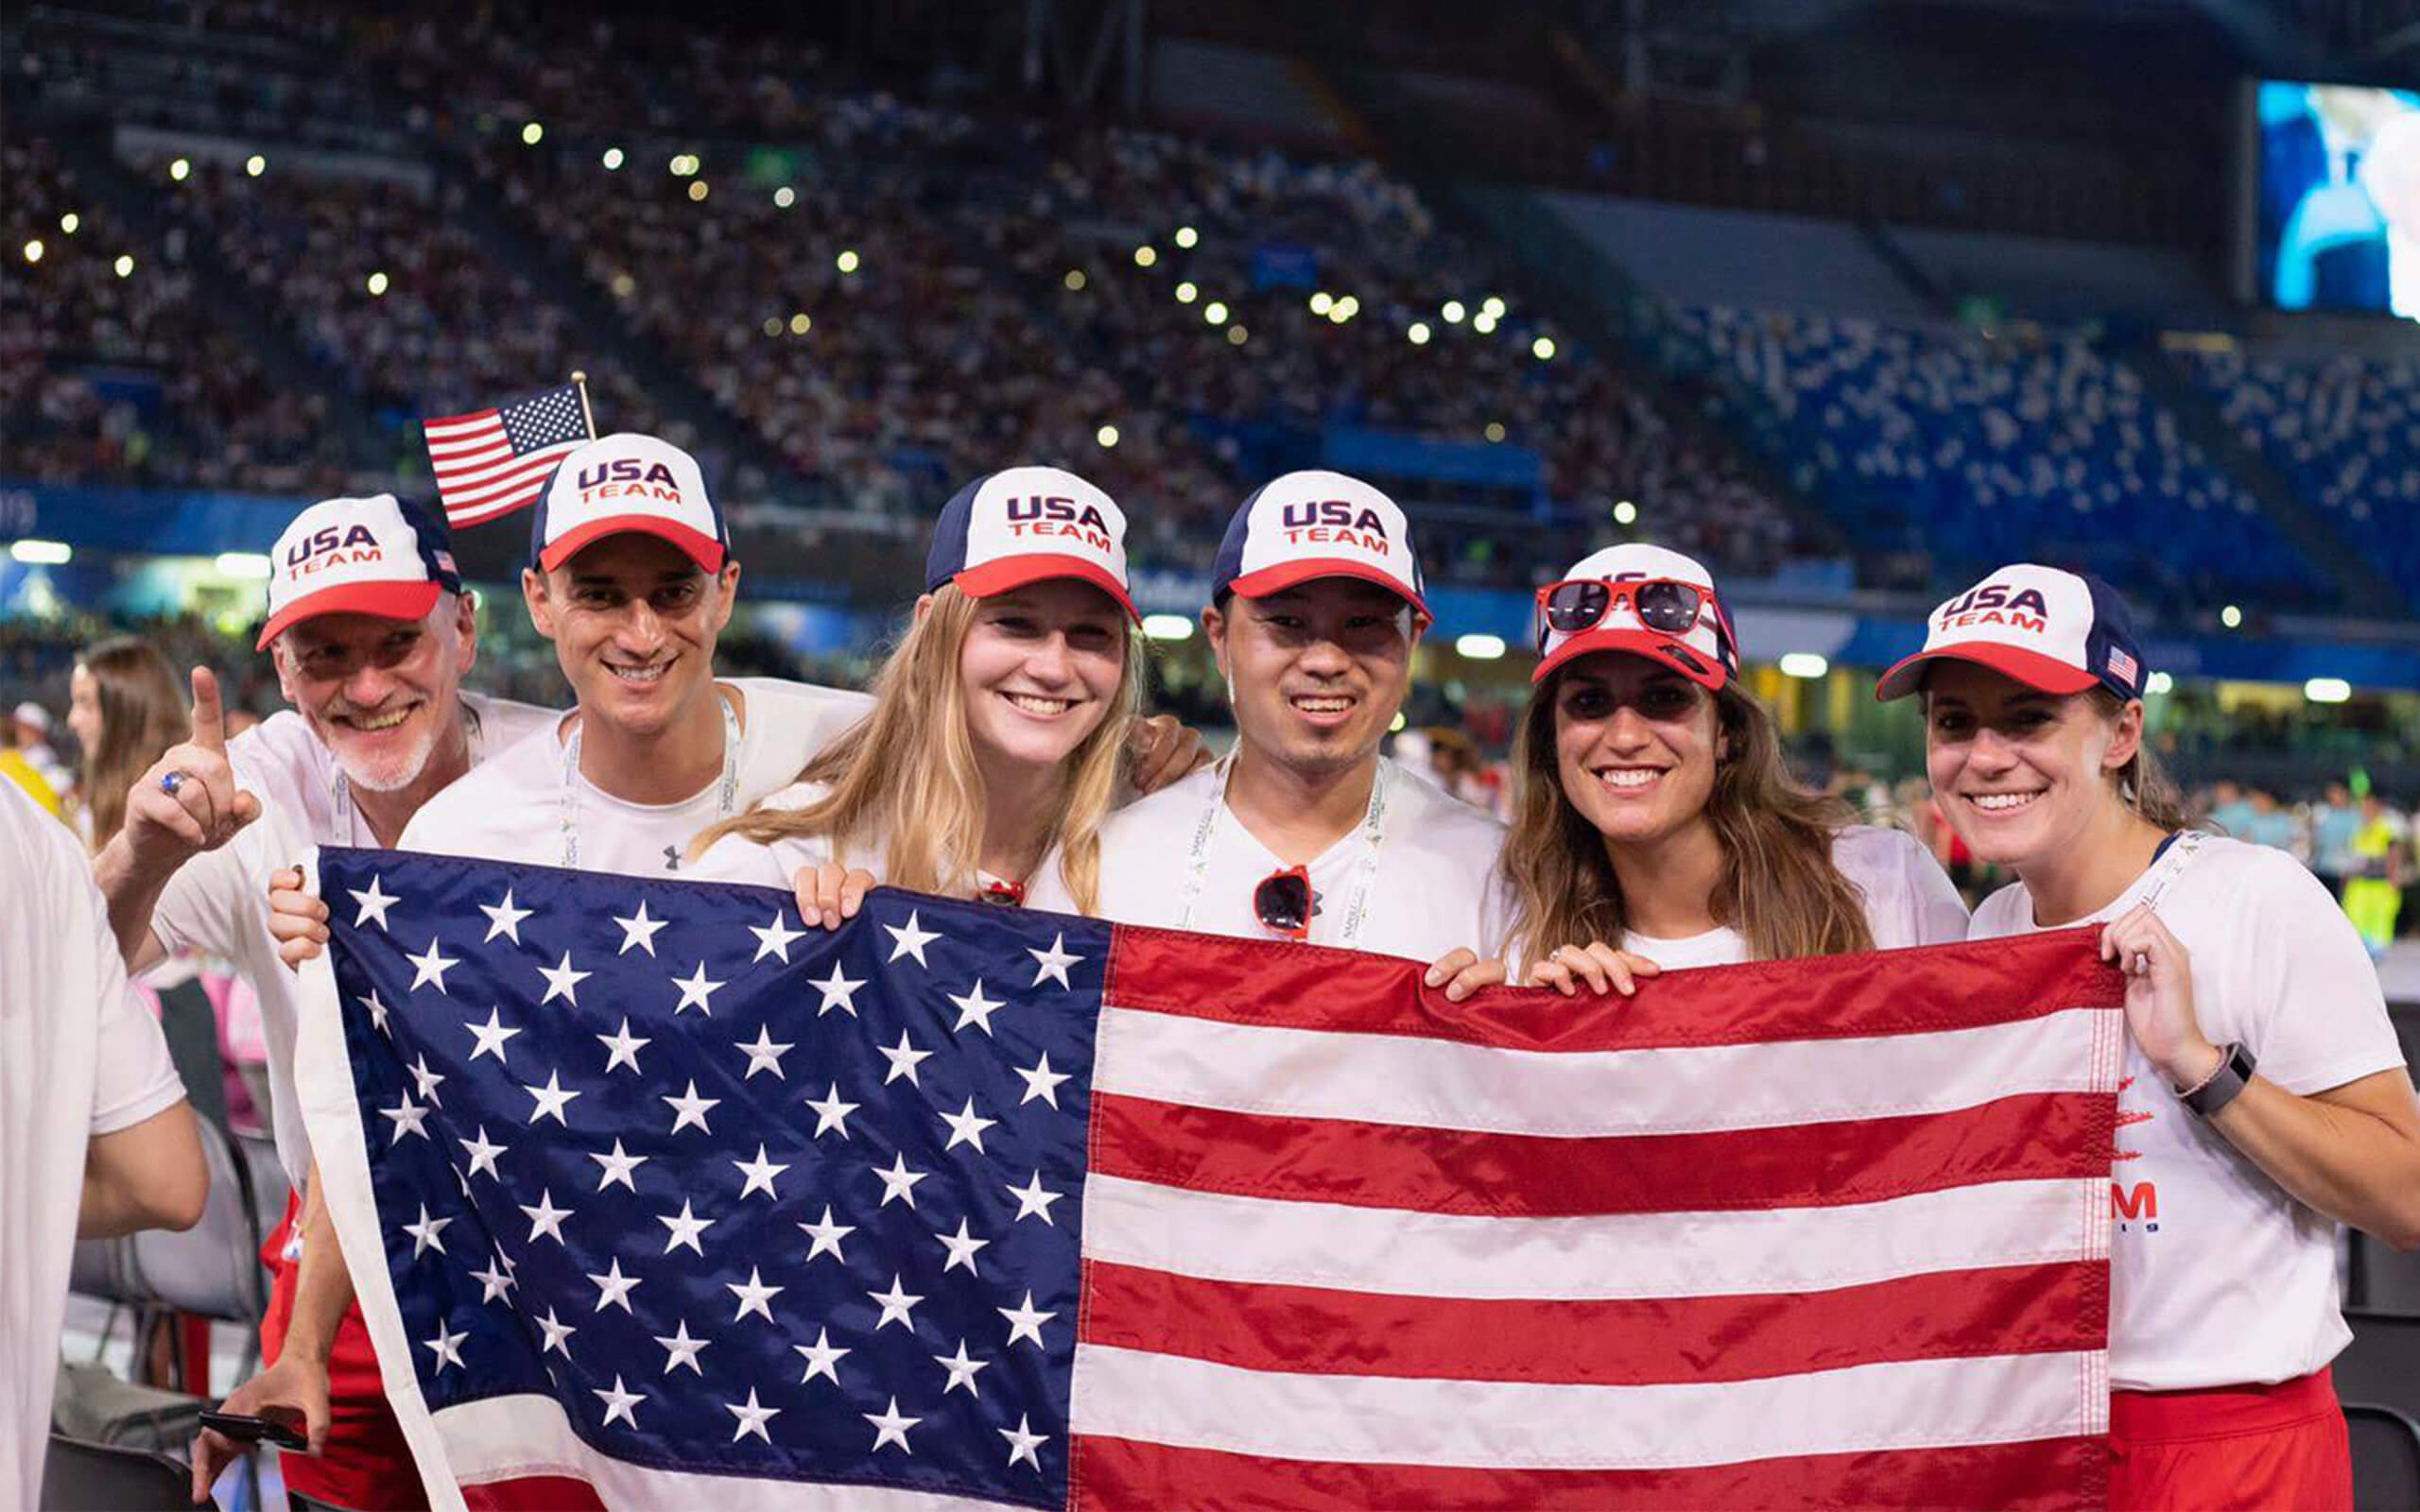 Graduate Chiara at the University games with team USA and USA flag